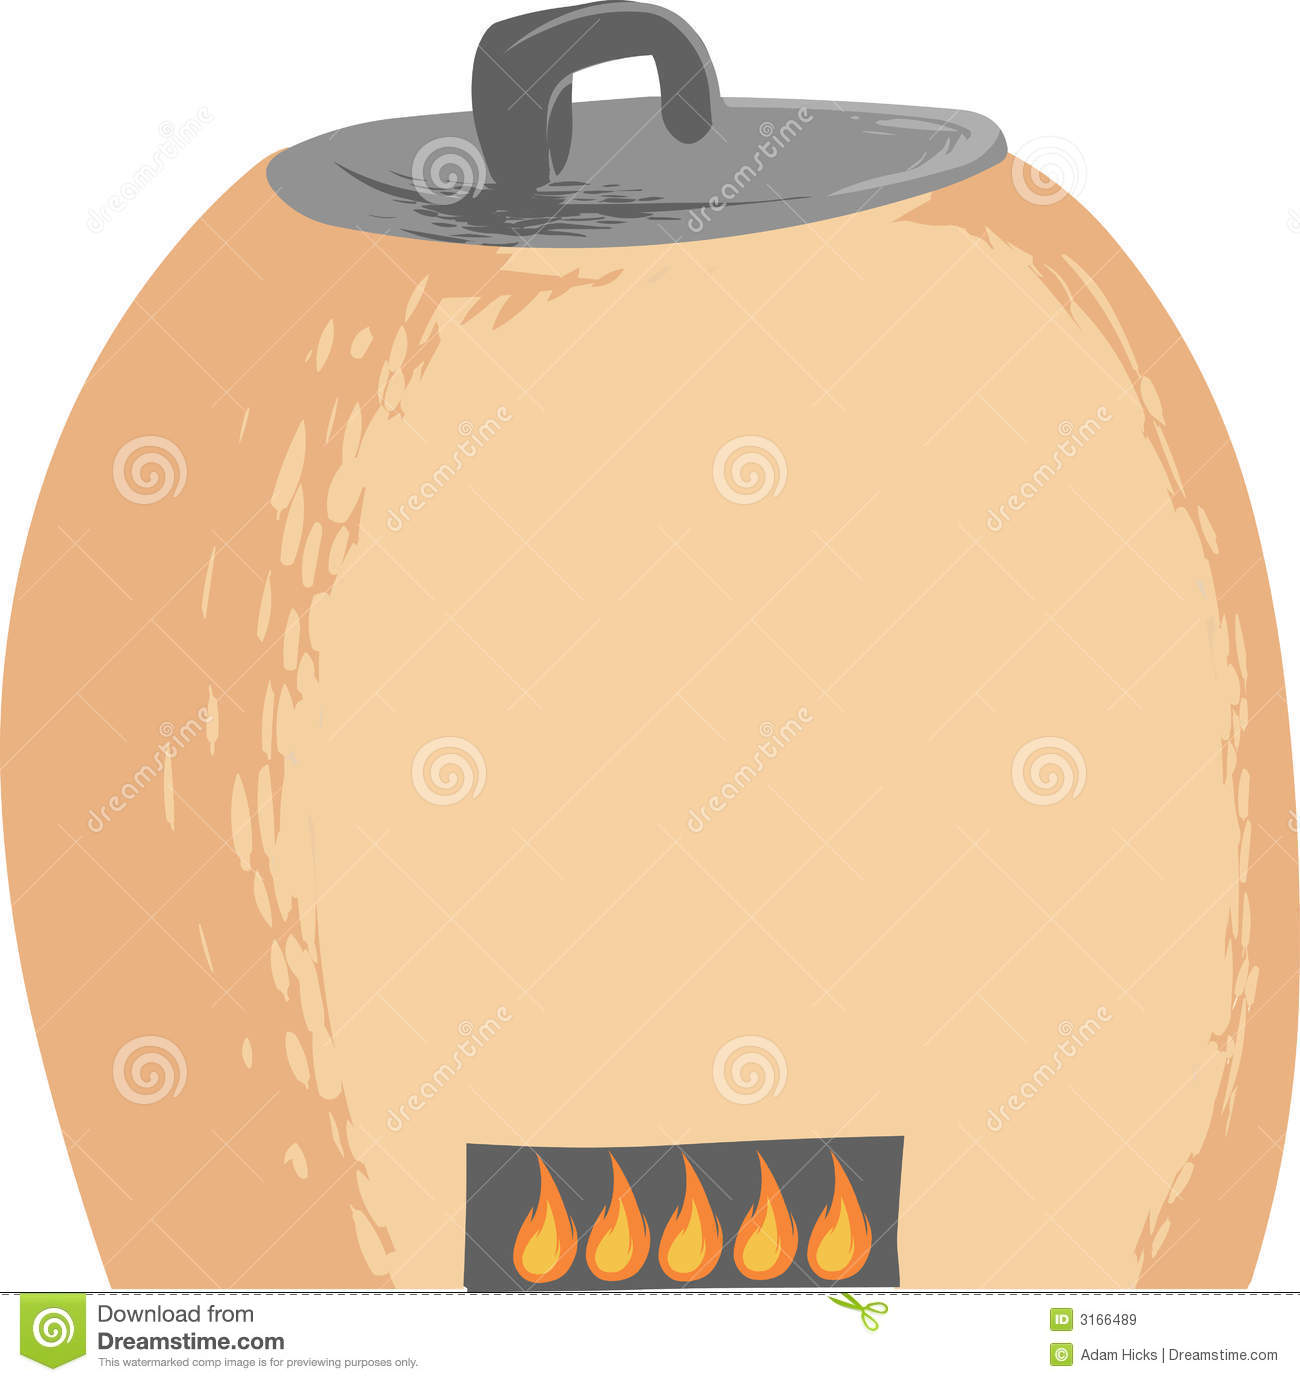 Clay Oven Stock Photos, Images, & Pictures.